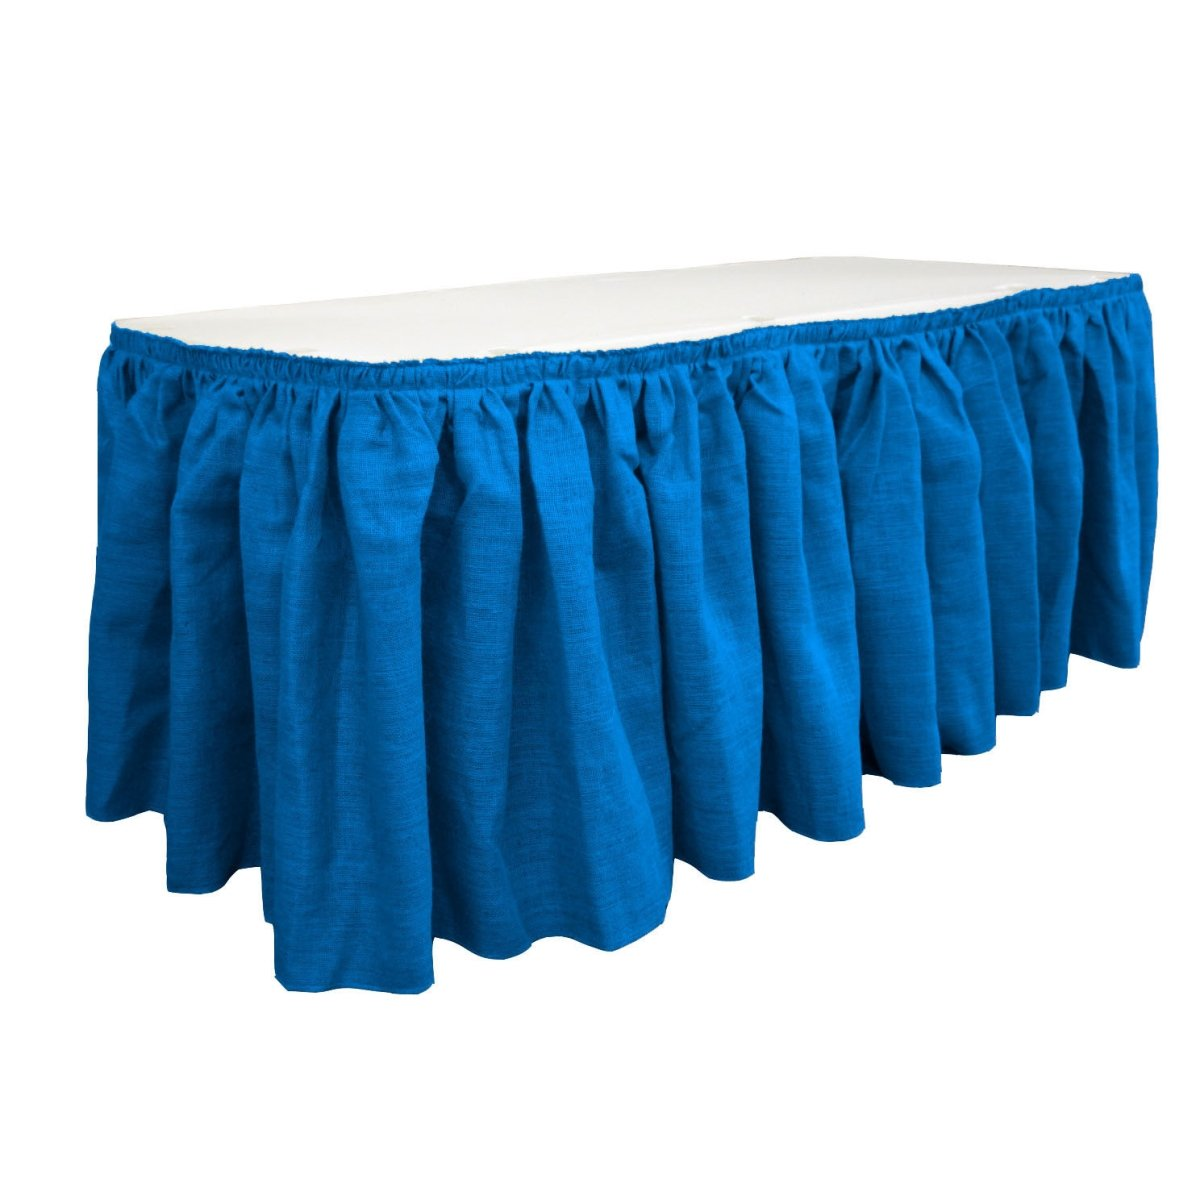 LA Linen SkirtBurlap17x29-10Lclips-BlueRoyal Burlap Table Skirt with 10 L-Clips44; Royal Blue - 17 ft. x 29 in.